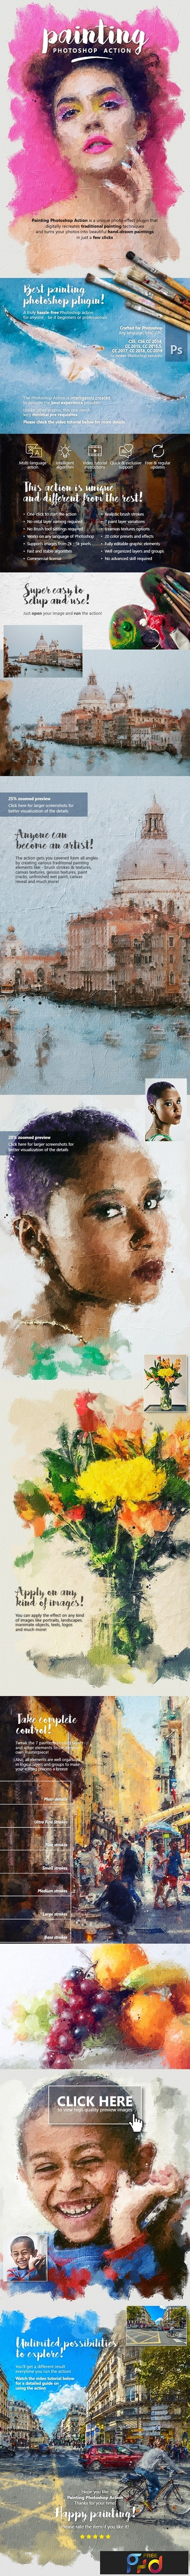 Painting Photoshop Action 23750254 1